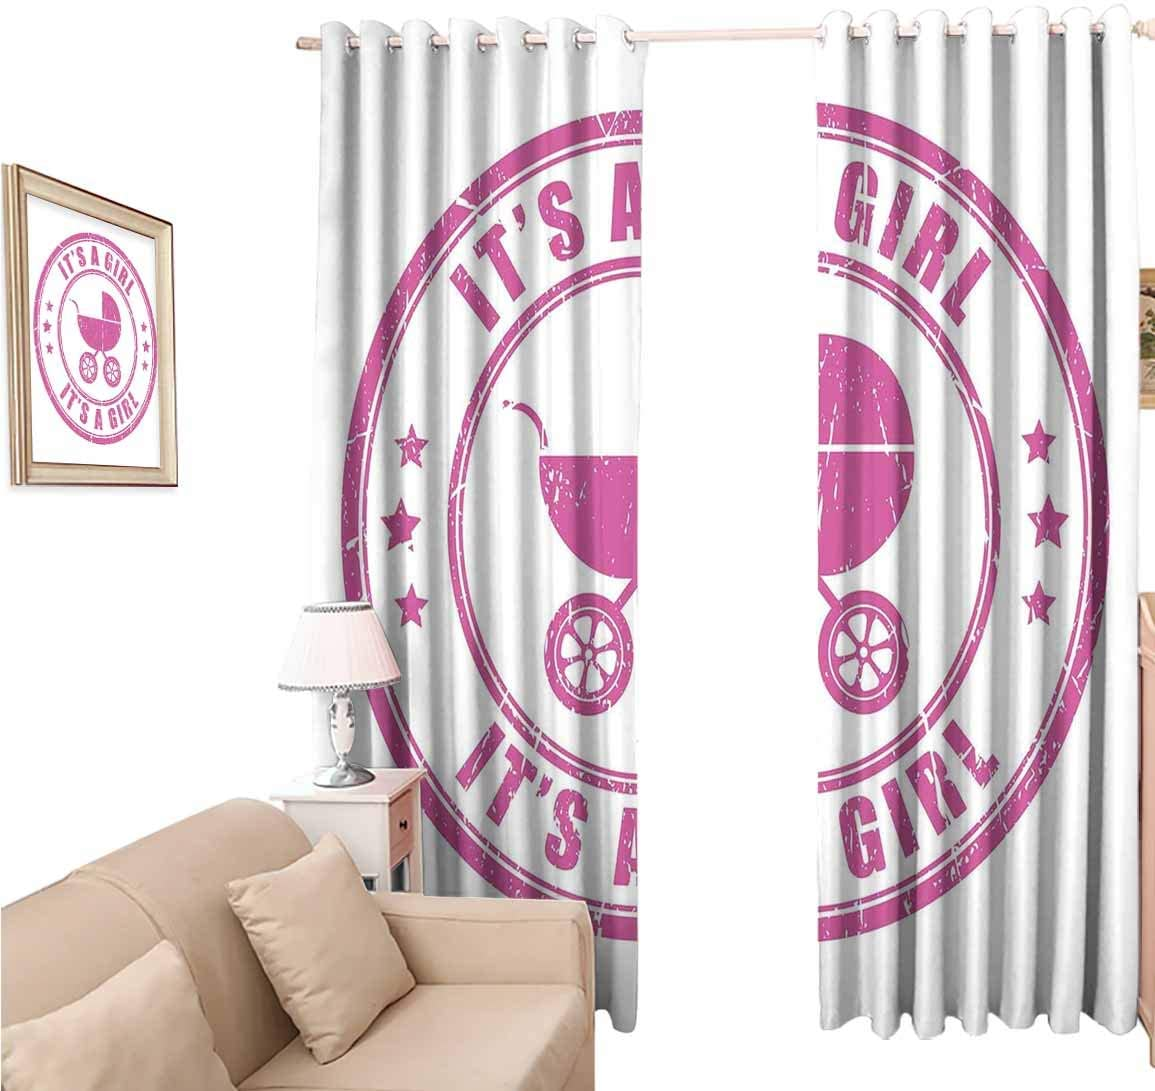 oobon Window Blackout Curtains Fabric, Gender Revealations Grunge Its A Girl Stamp Baby Carriage Artistic Newborn Icon, 108 Inches Long for Nursery Room, 96x108 inch